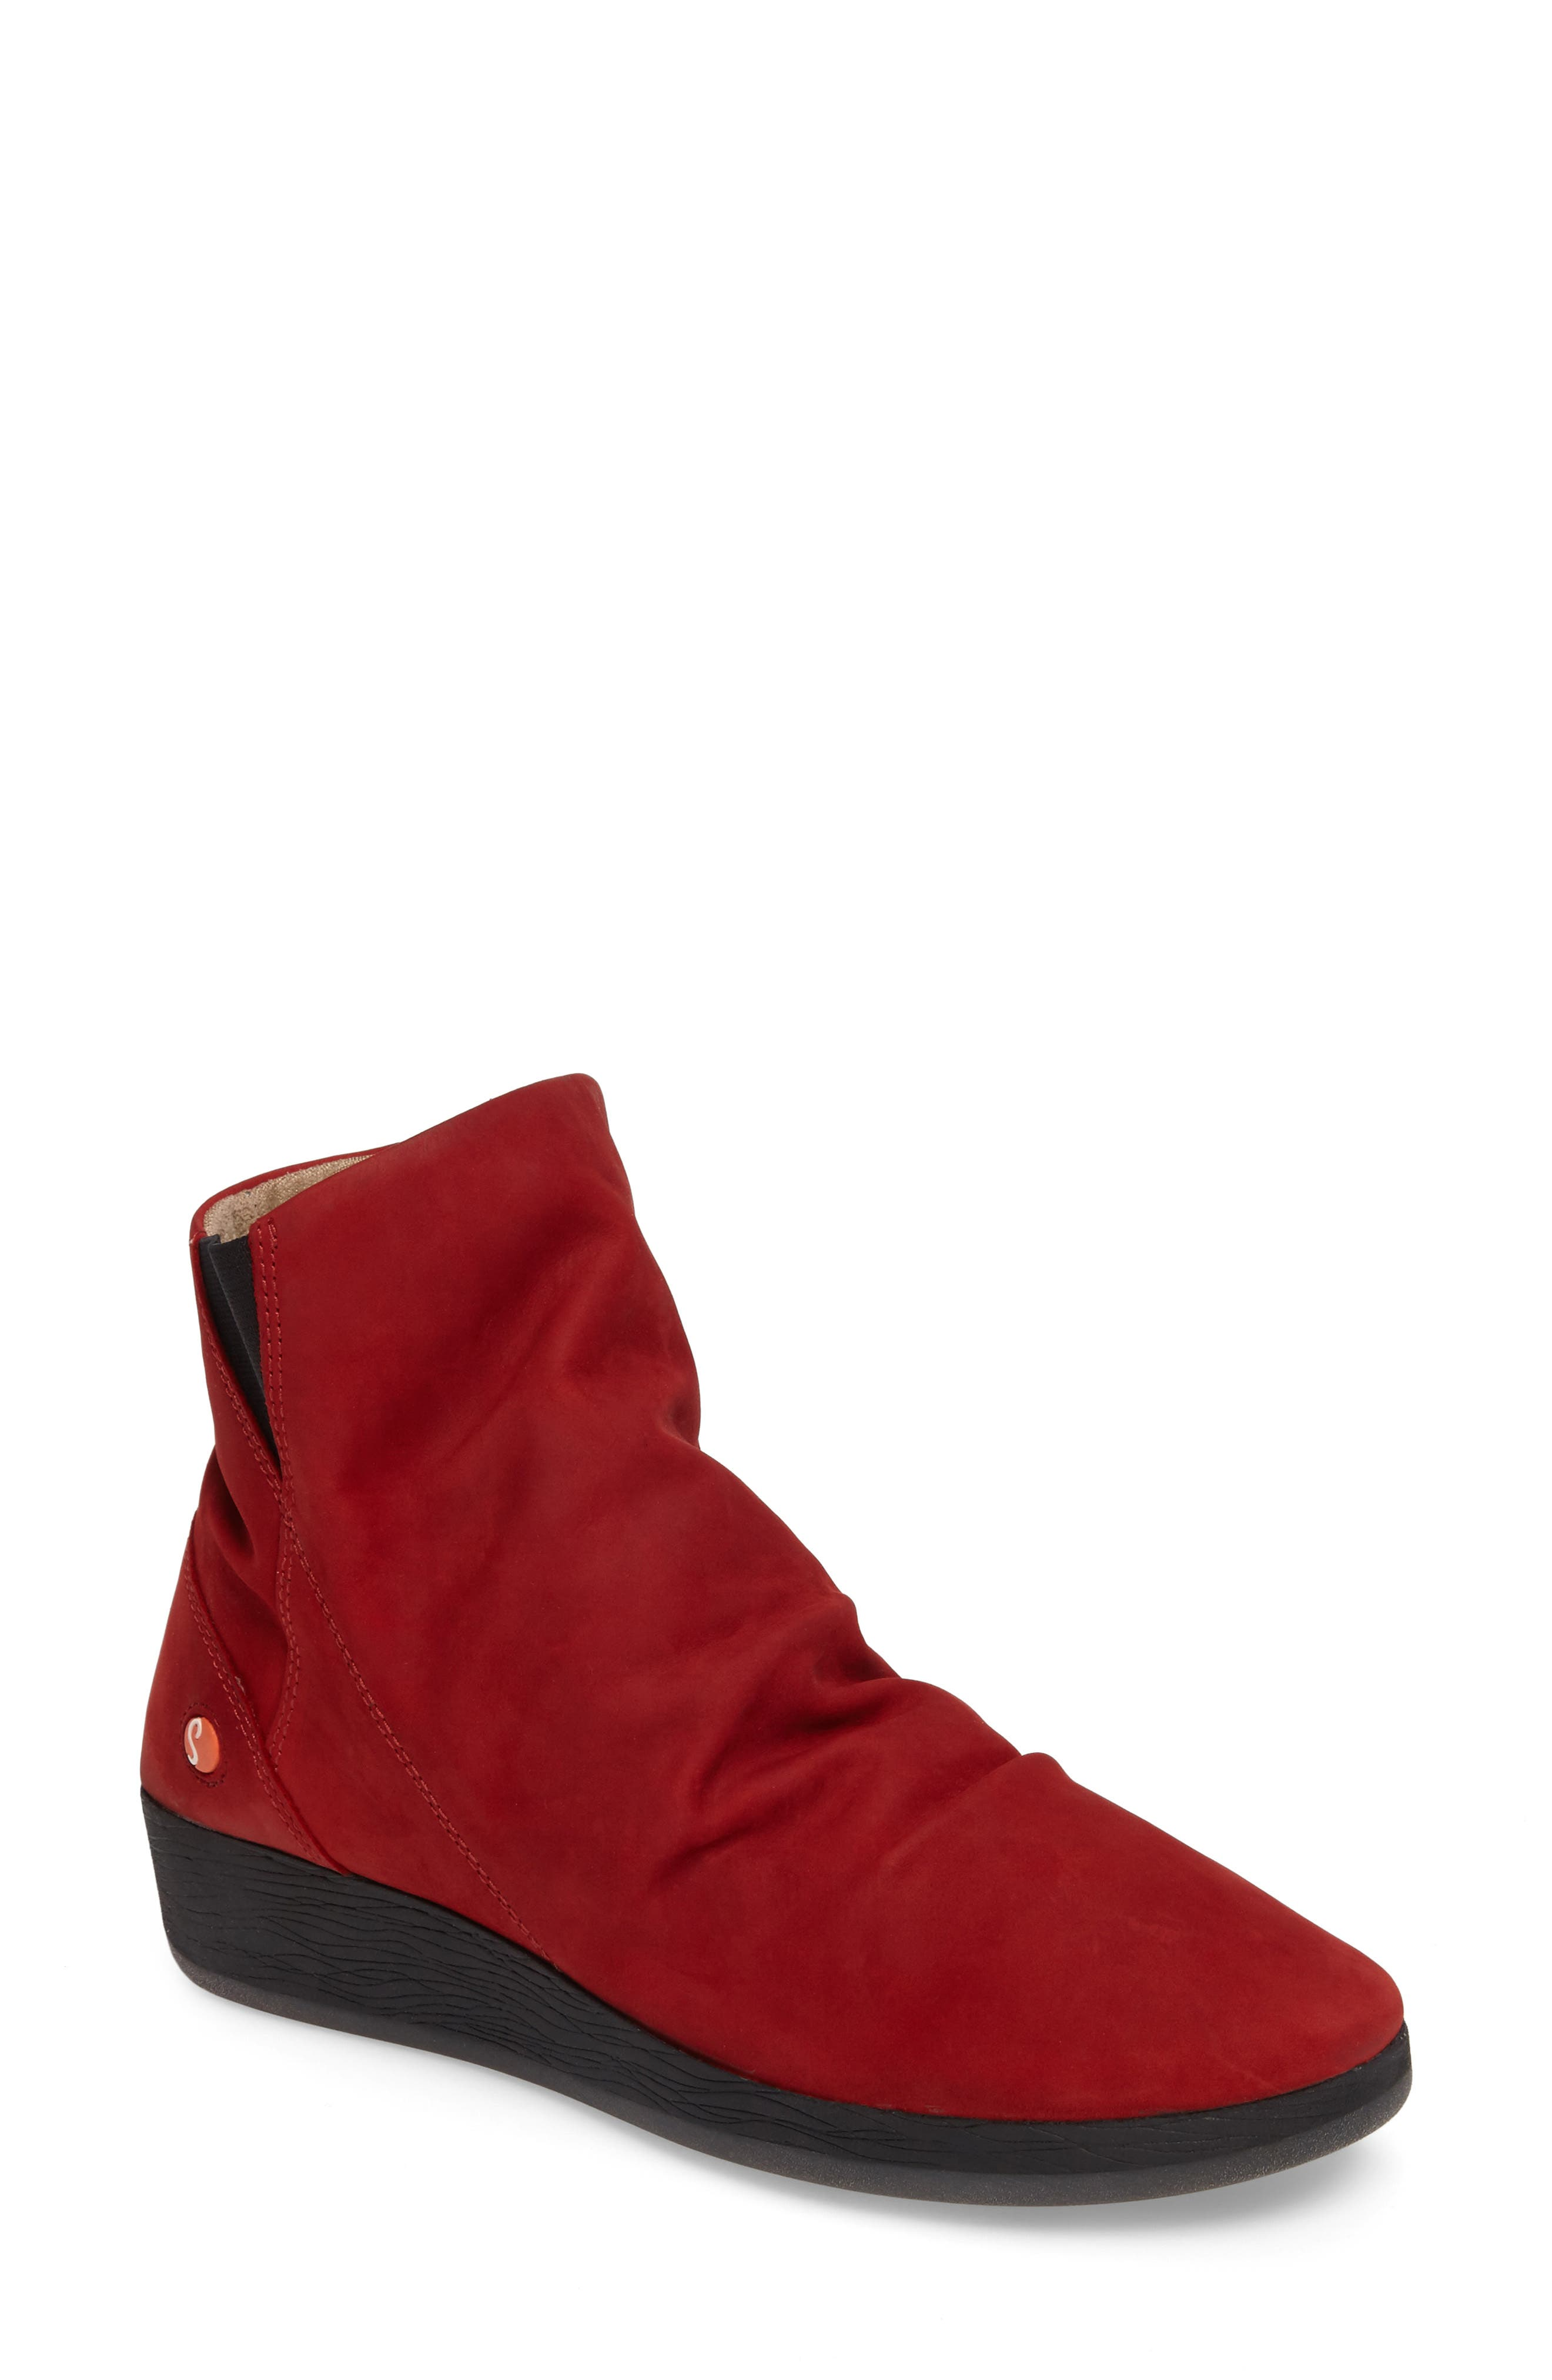 Ayo Low Wedge Bootie,                             Main thumbnail 1, color,                             Red Nubuck Leather